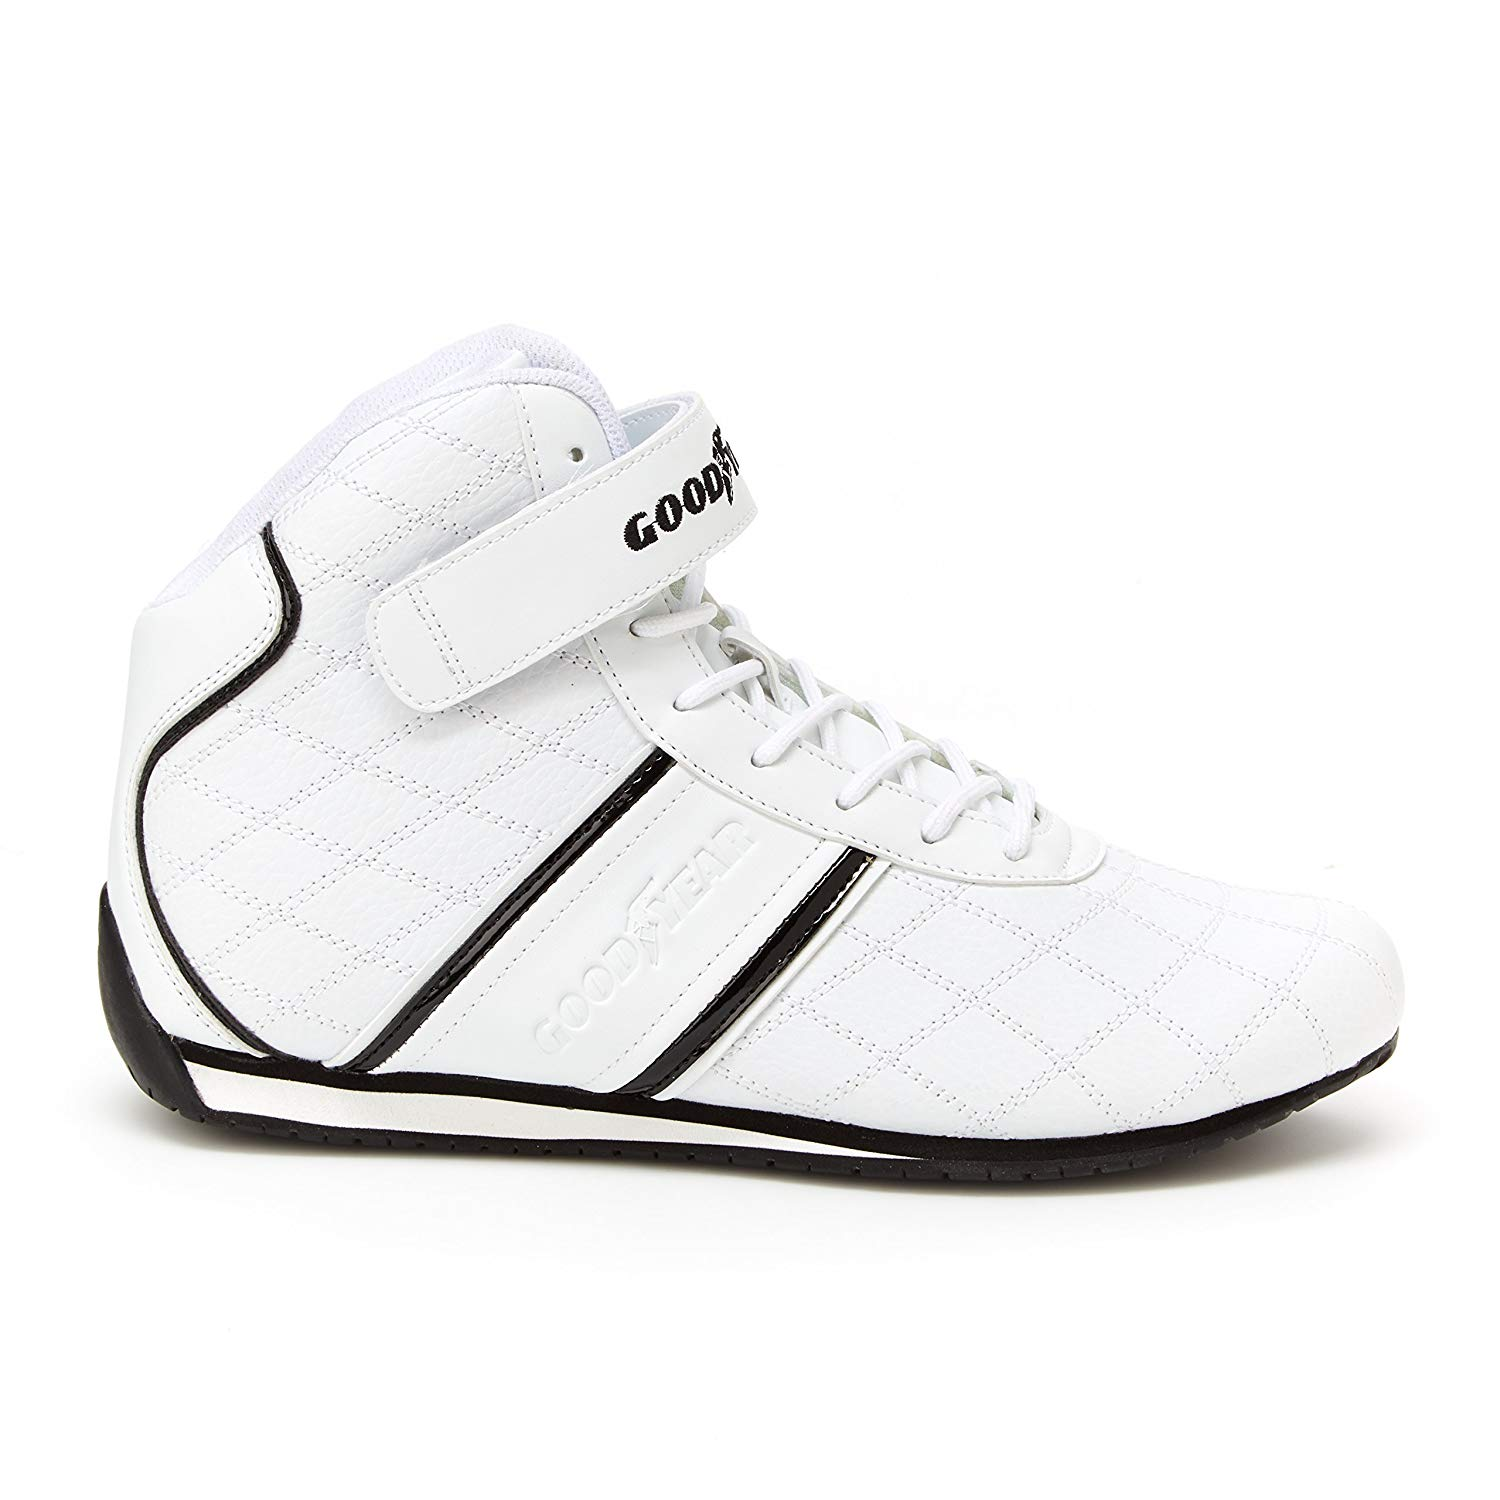 39cd67a509a0 Cheap adidas goodyear sneakers deals. (115320 results). Goodyear Mens  Clutch Racer Sneaker – High-Top Sneakers